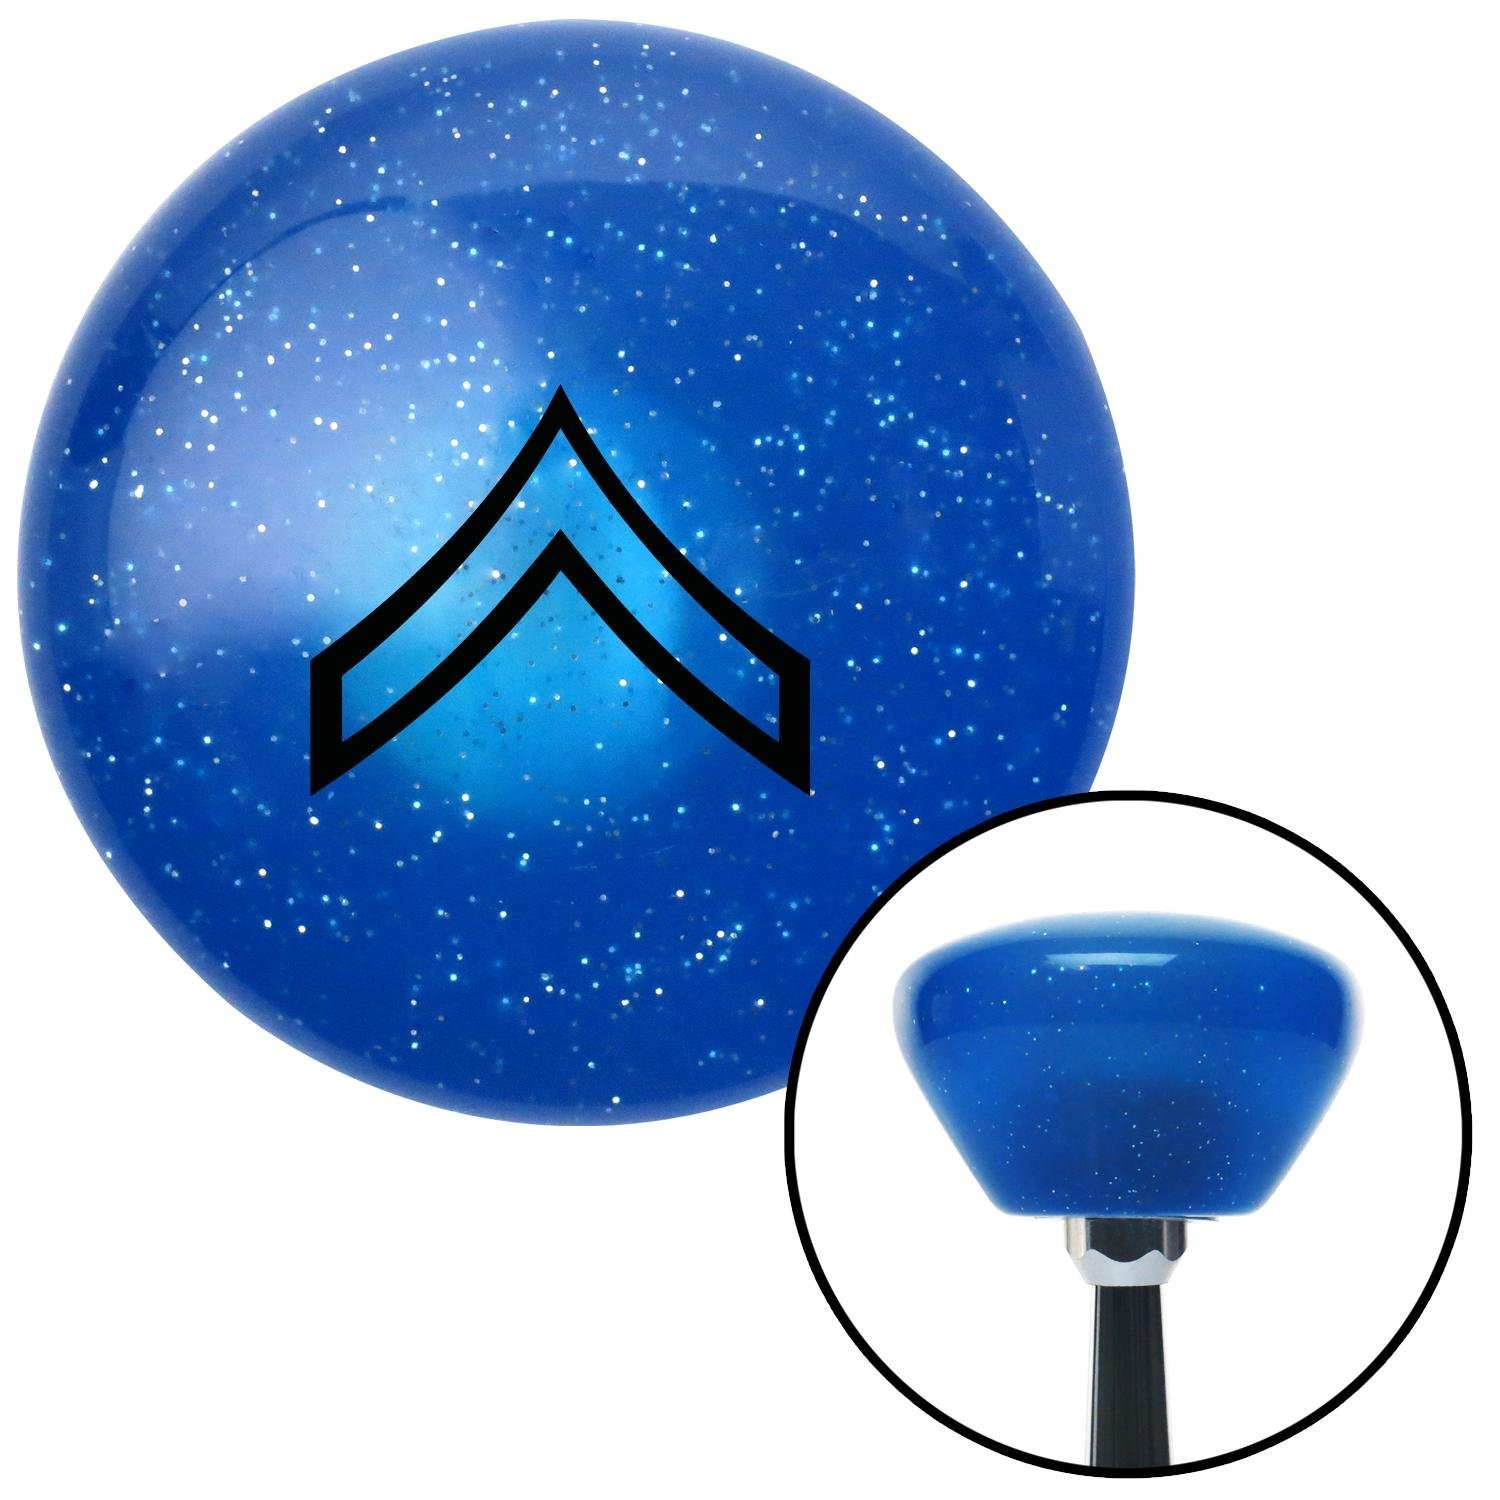 American Shifter 190493 Blue Retro Metal Flake Shift Knob with M16 x 1.5 Insert Black 01 Private First Class